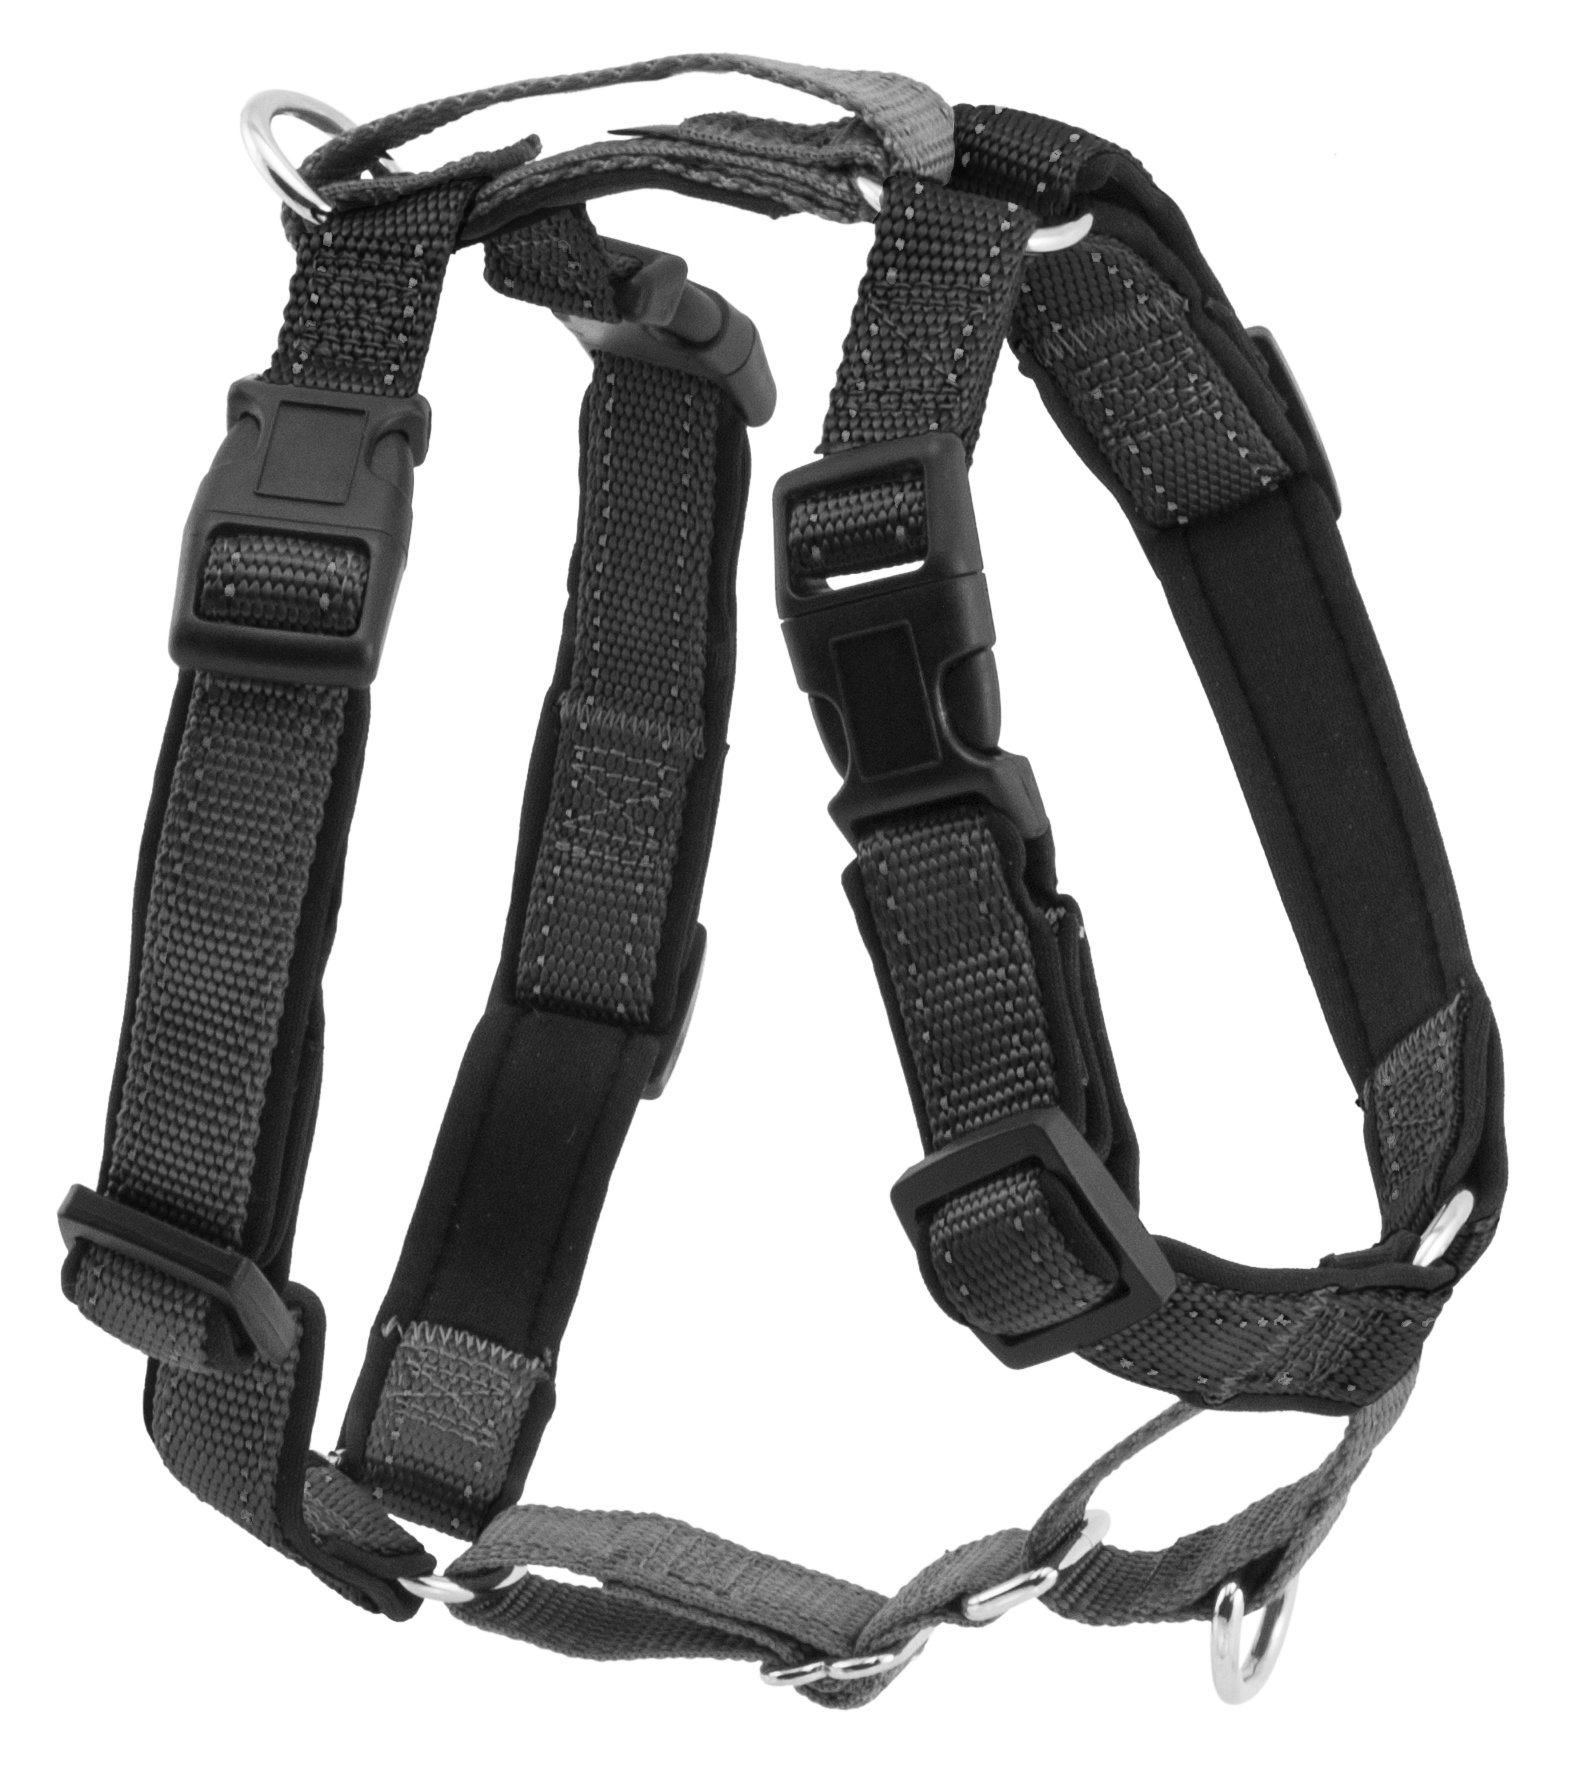 PetSafe 3 in 1 Harness and Car Restraint, Extra Small, Black, No Pull, Adjustable, Training for Small/Medium/Large Dogs